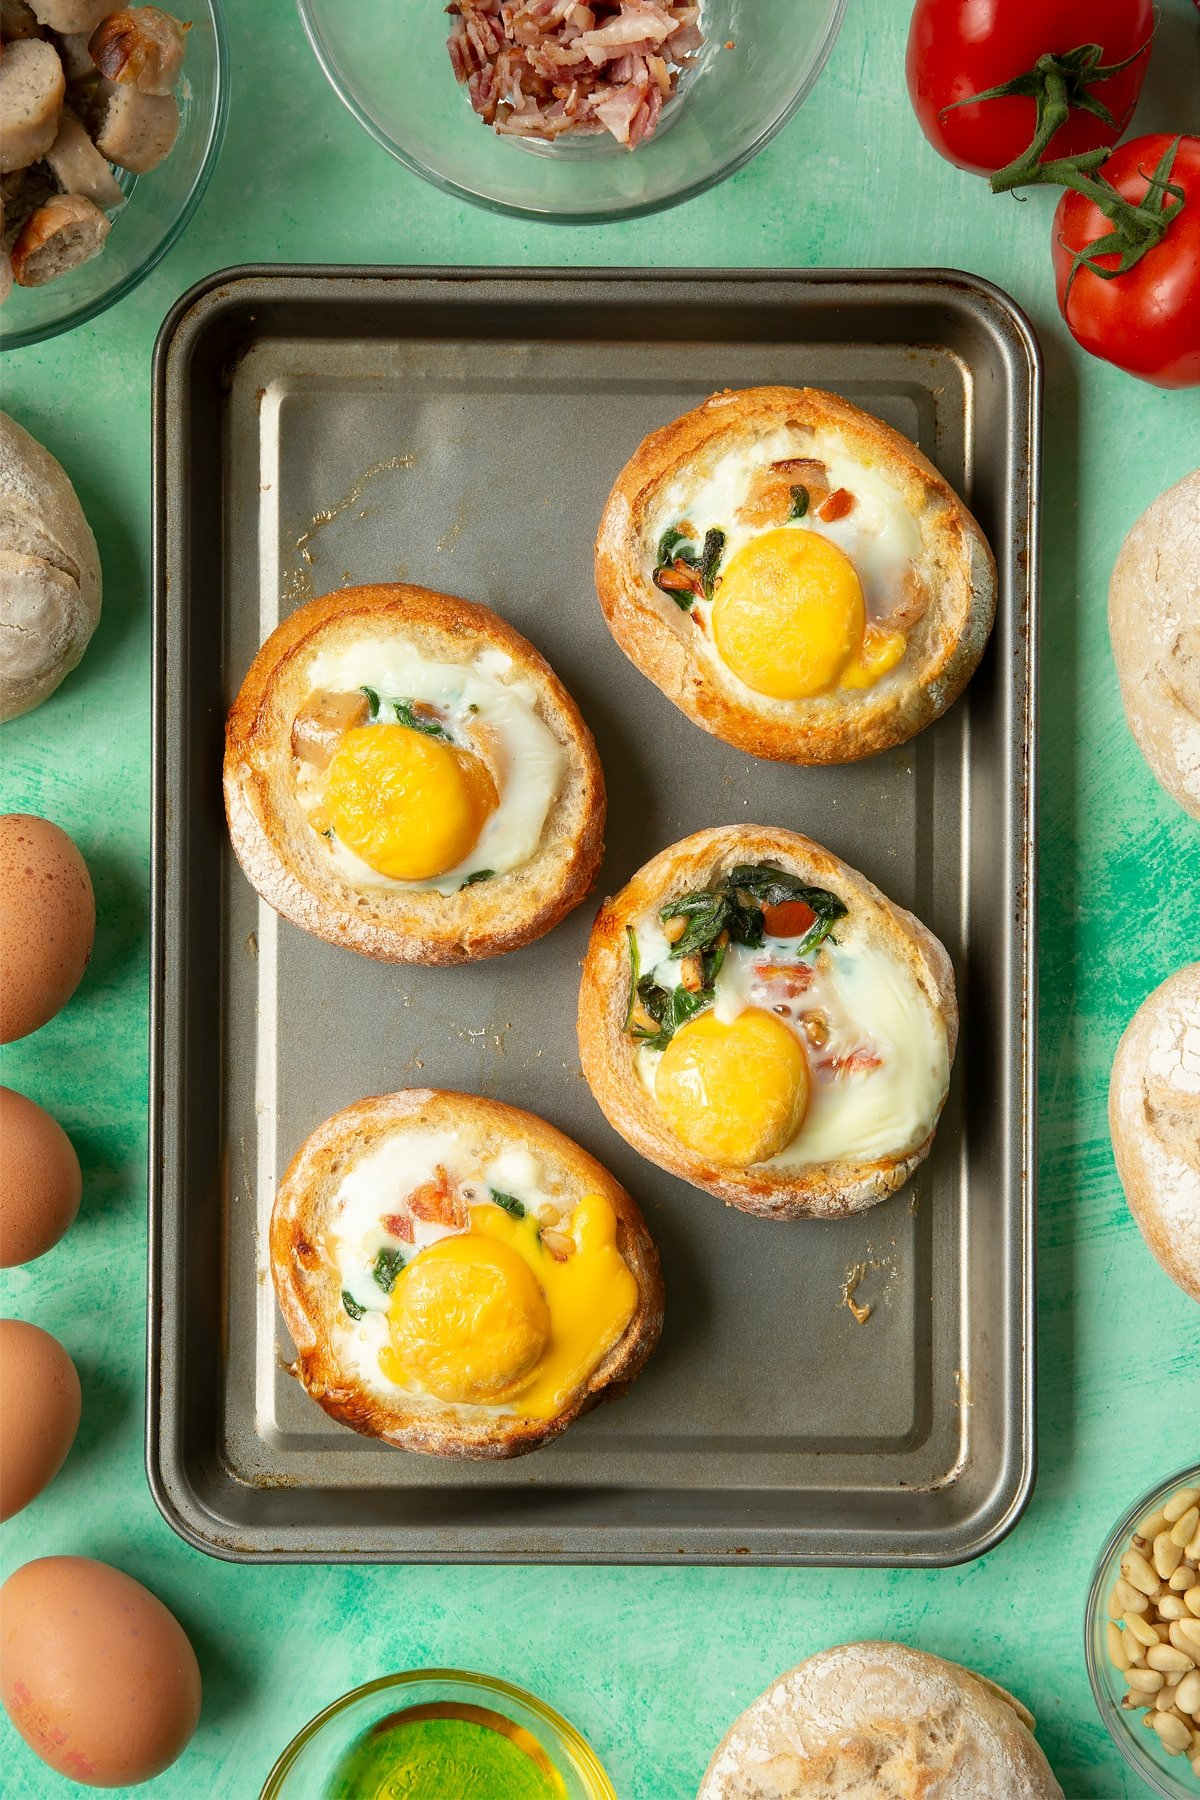 Four bread rolls on a baking tray. The rolls are hollowed out and filled with a mix of fried sausage, bacon, chopped tomatoes, pine nuts and wilted spinach, and topped with baked eggs. The tray is surrounded by ingredients to make breakfast rolls.